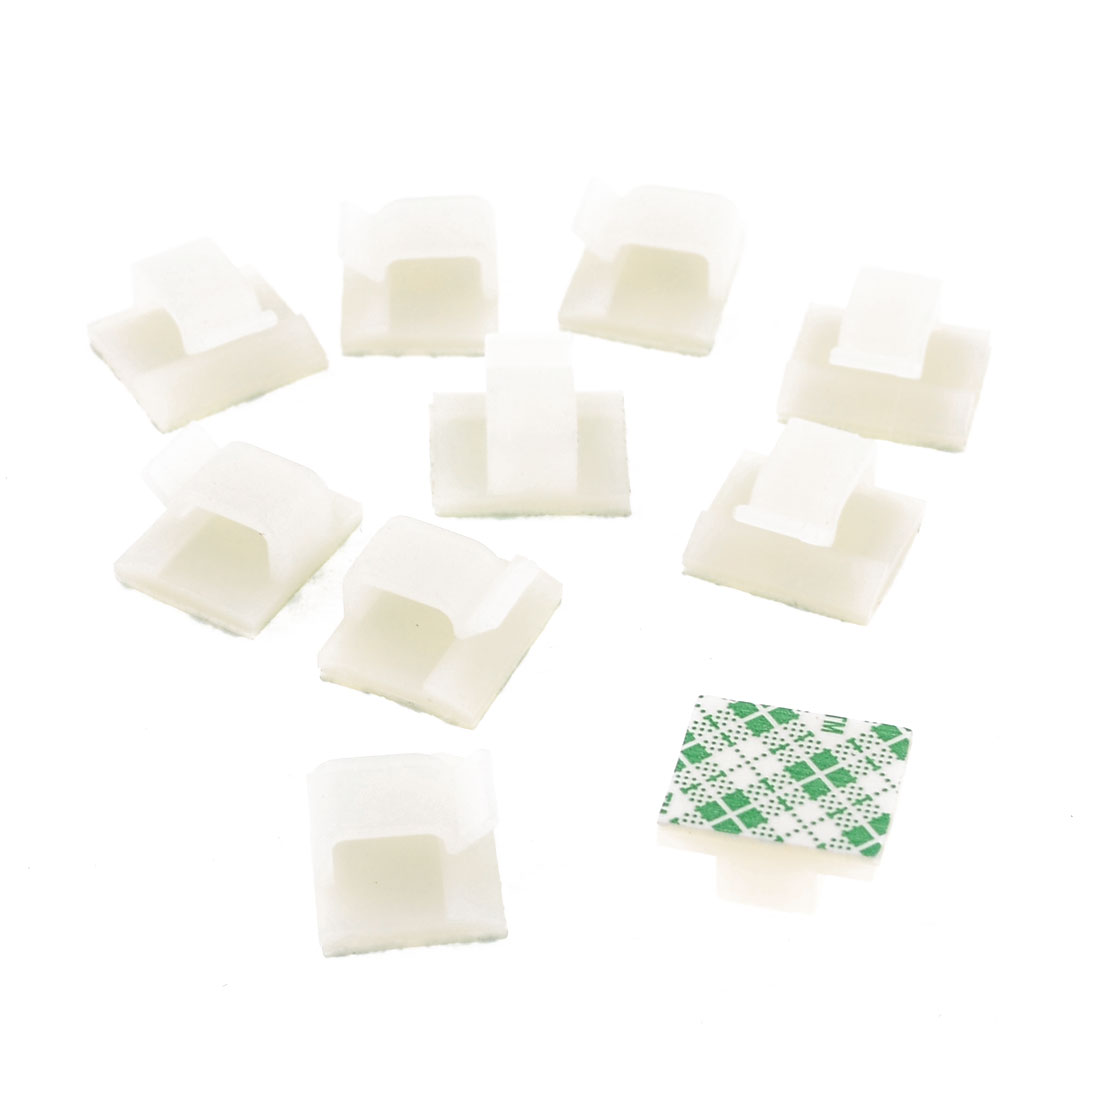 Plastic Computer Networking Wire Cord Cable Clip Organizer Green White 10 Pcs